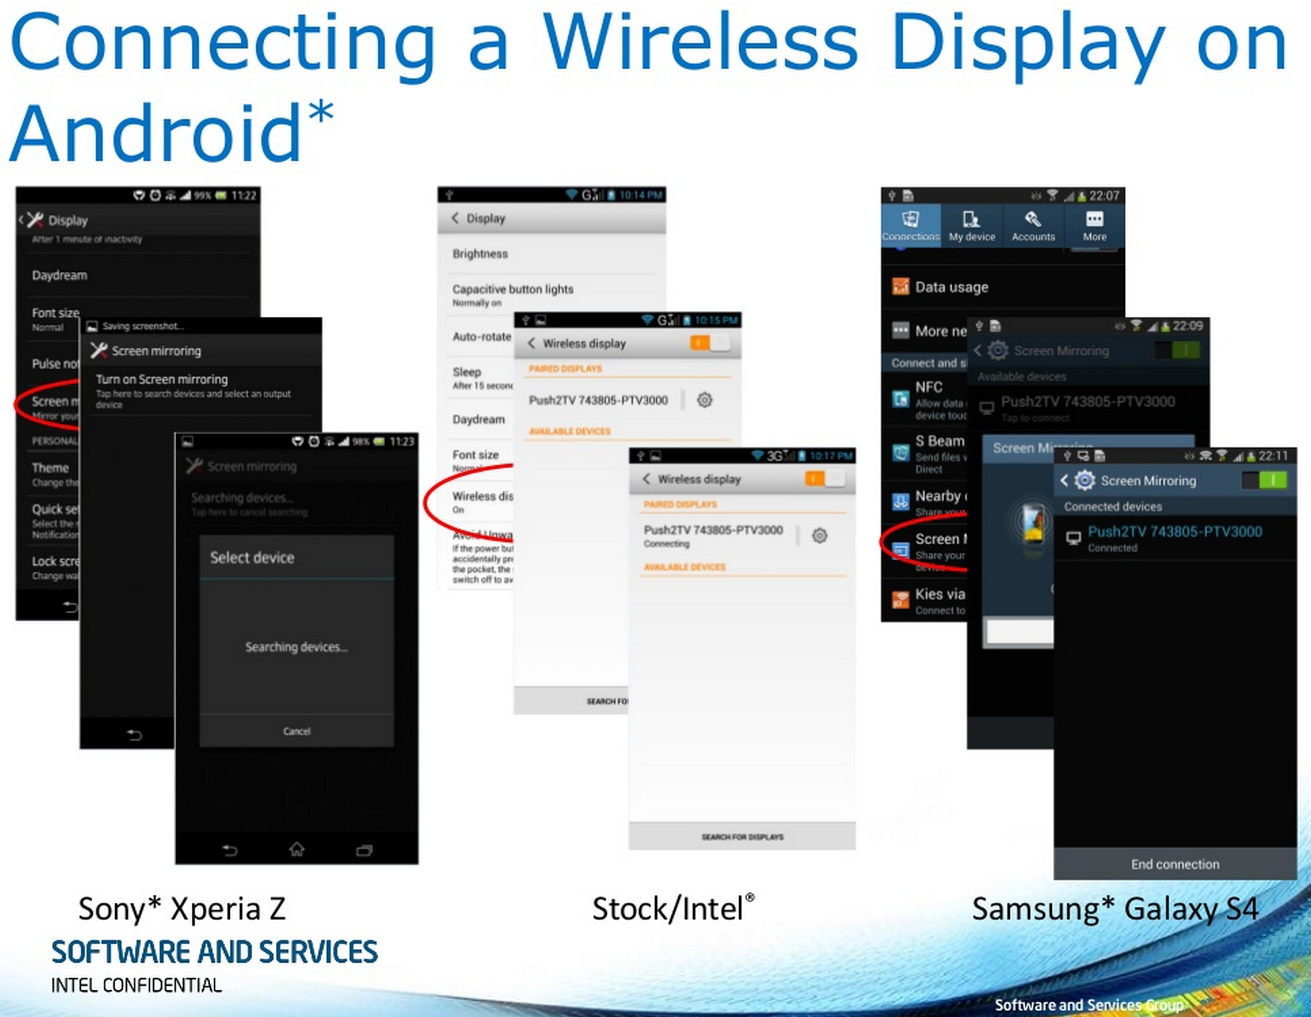 Connecting a Wireless Display on Android